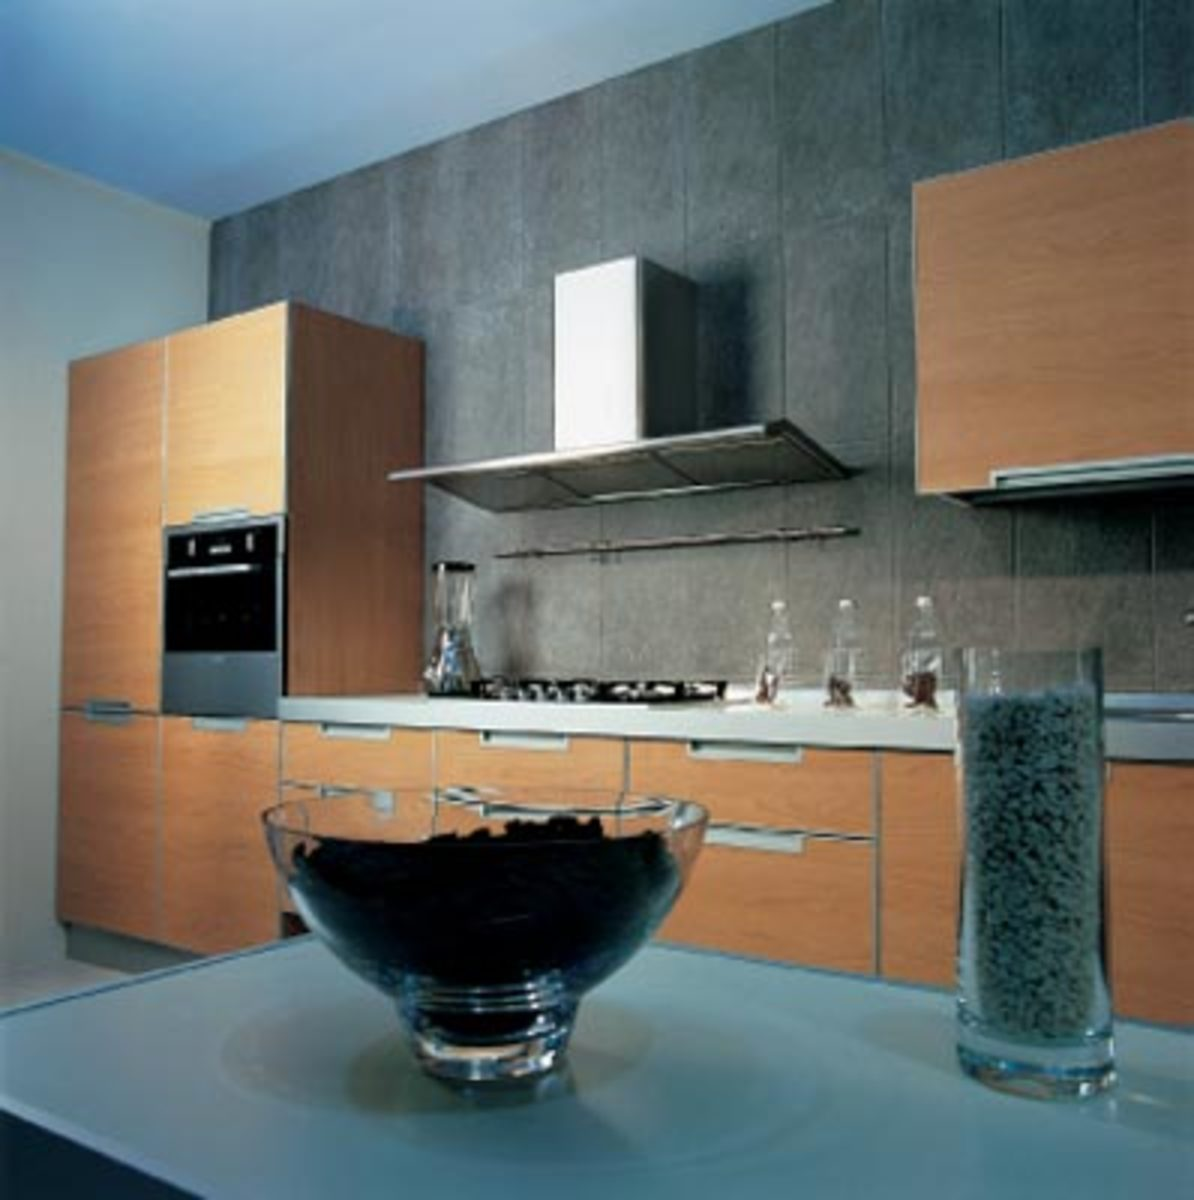 What Is A Range Hood And Why Do I Need One?